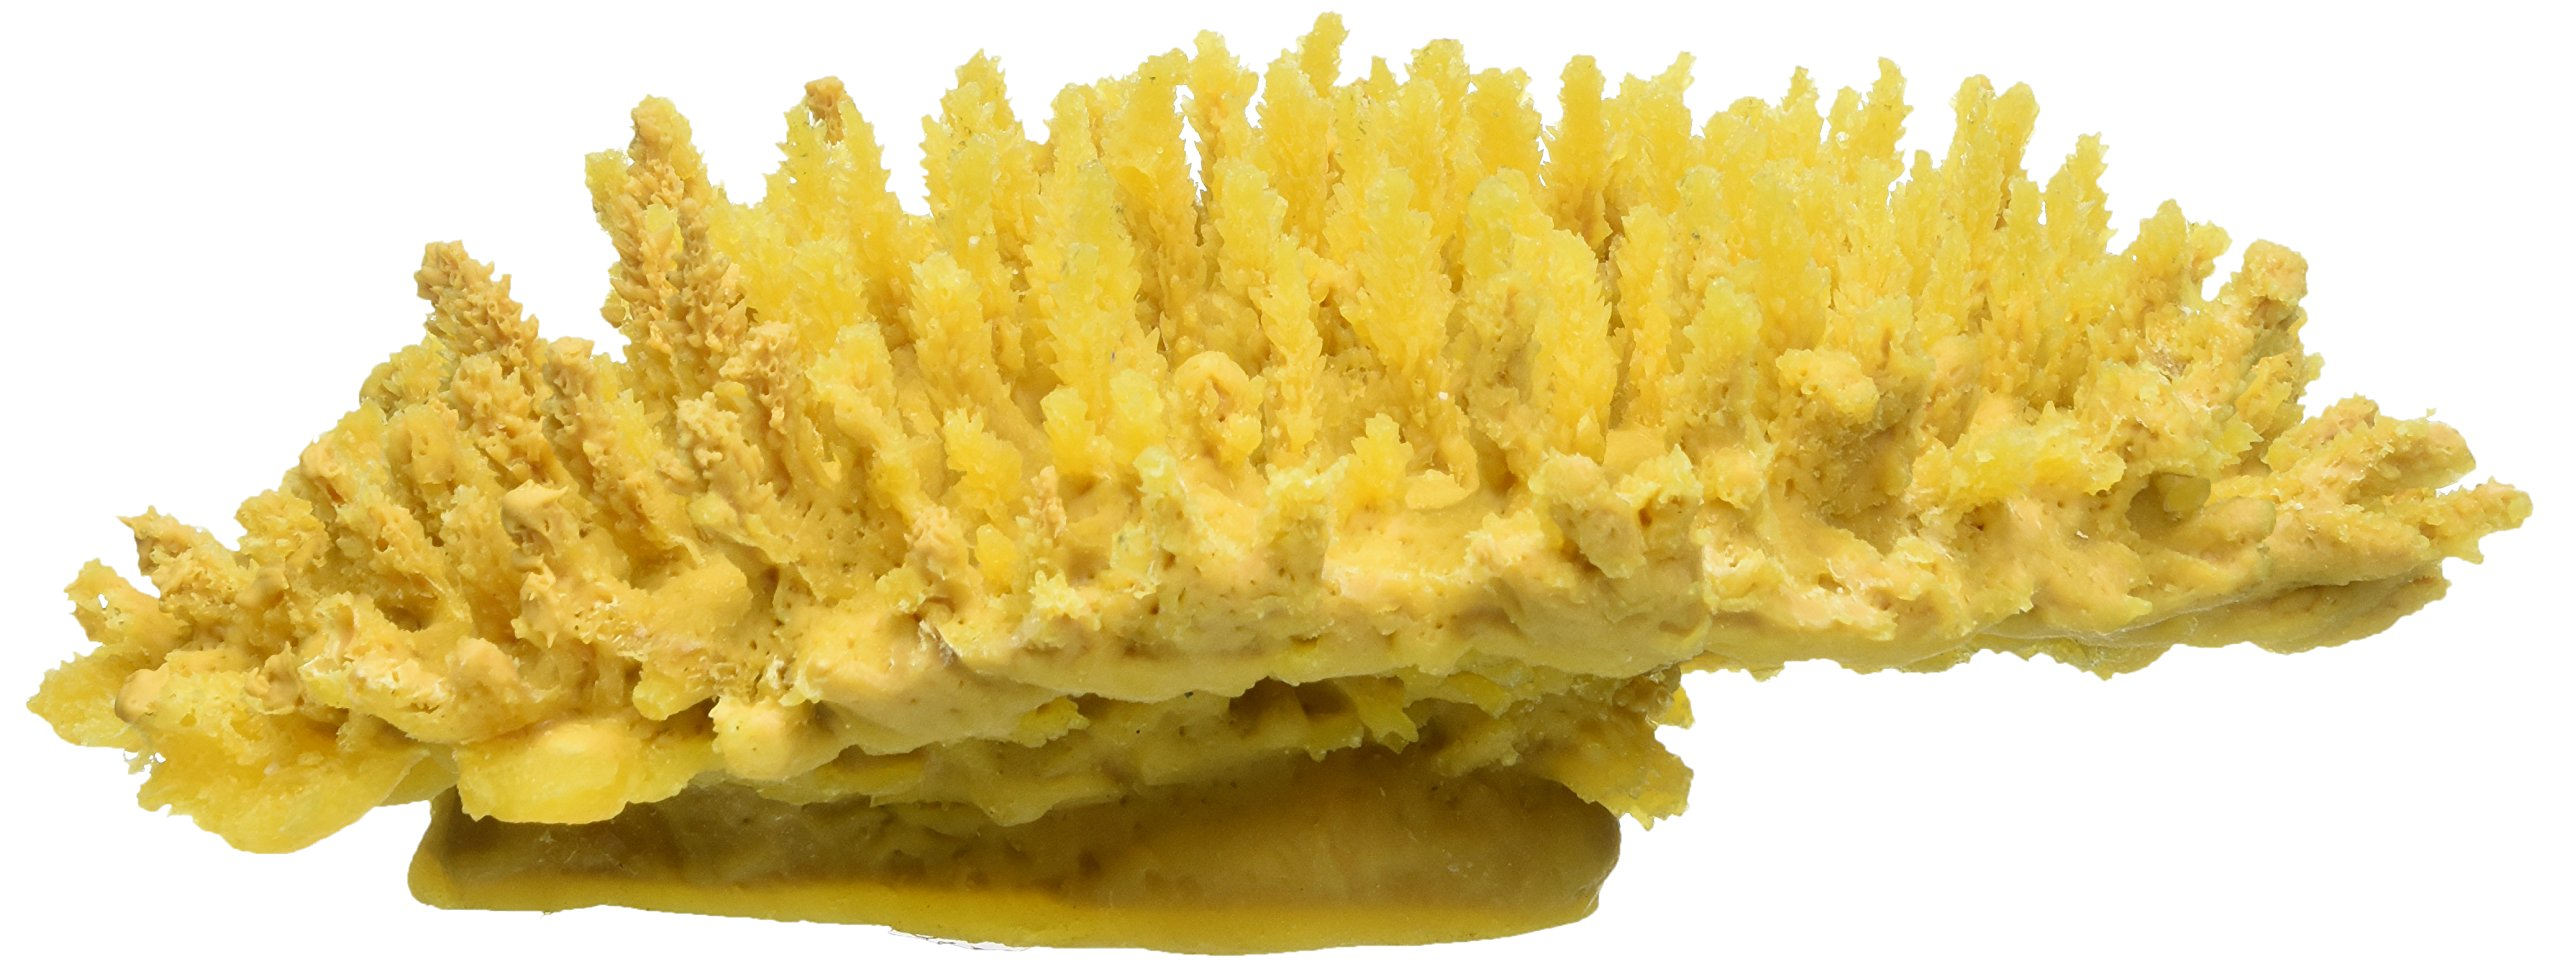 Deep Blue Professional ADB80103 Table Coral for Aquarium, 13.5 by 5 by 10-Inch, Yellow